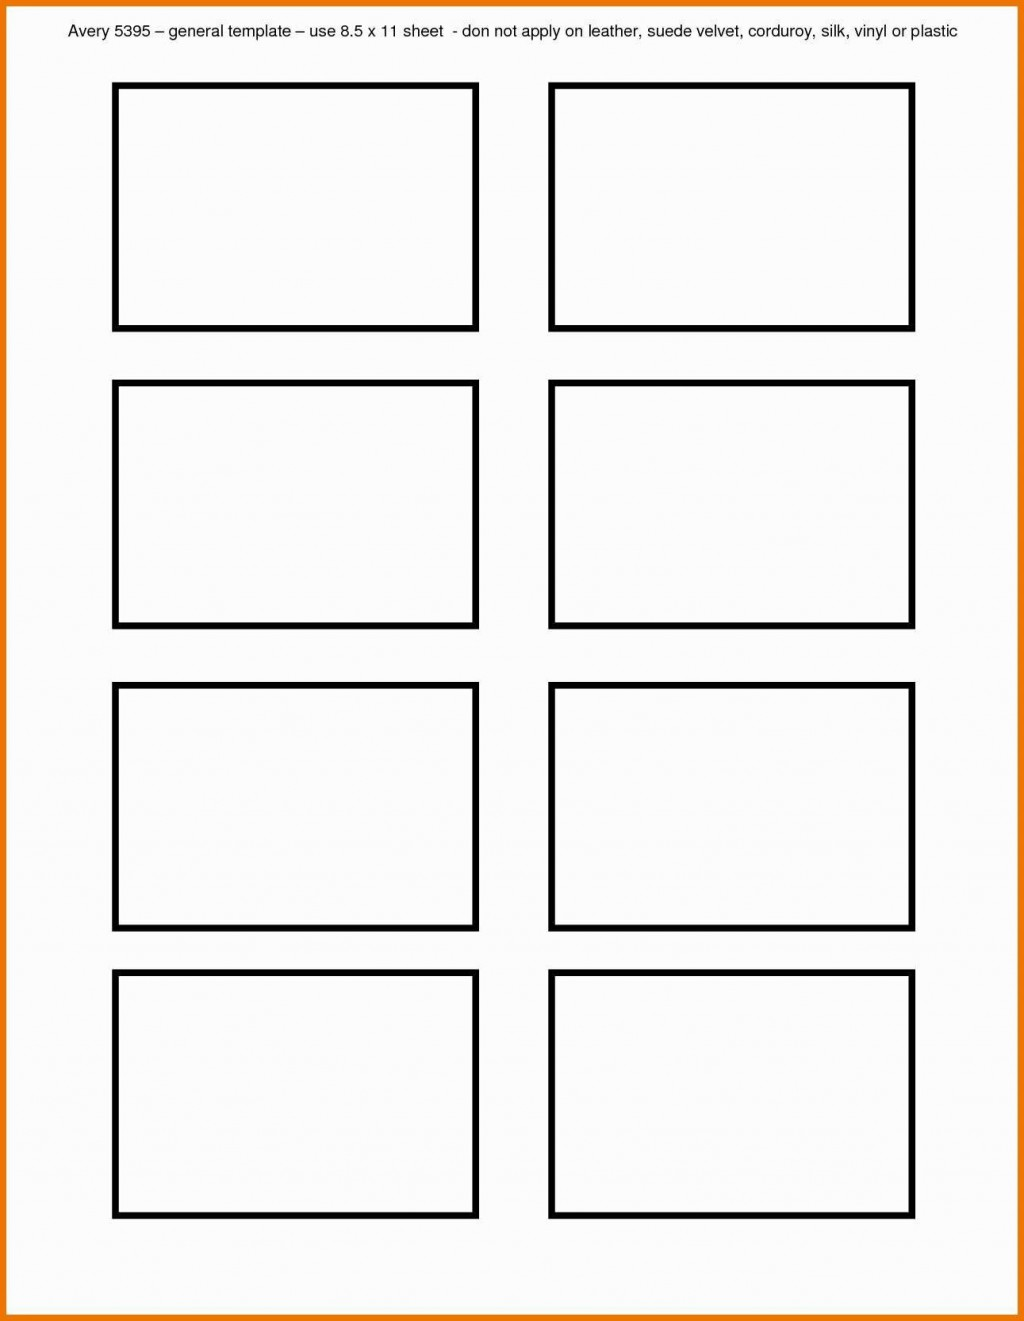 000 Unique Free Printable Card Template Word Concept  Busines Thank You Blank ForLarge